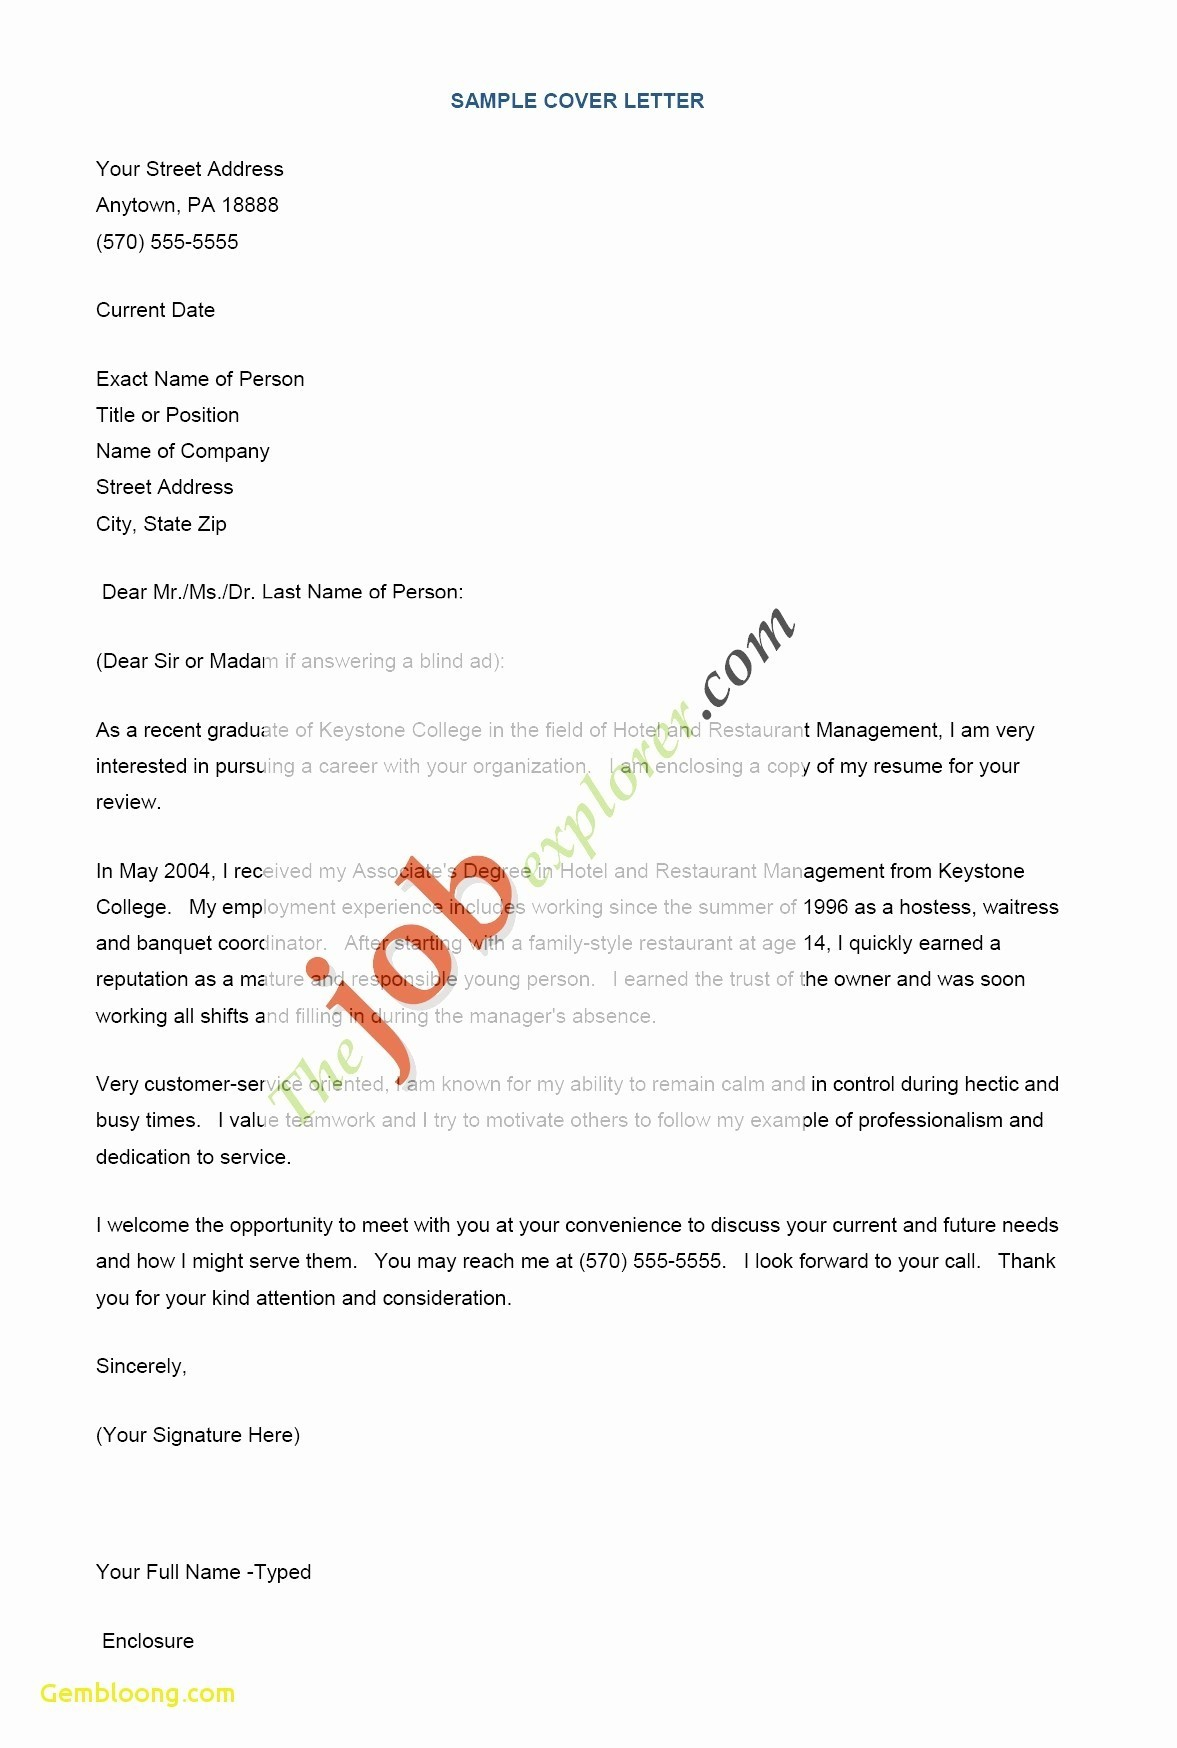 Glassdoor Resume Review - 23 How to Create the Perfect Resume